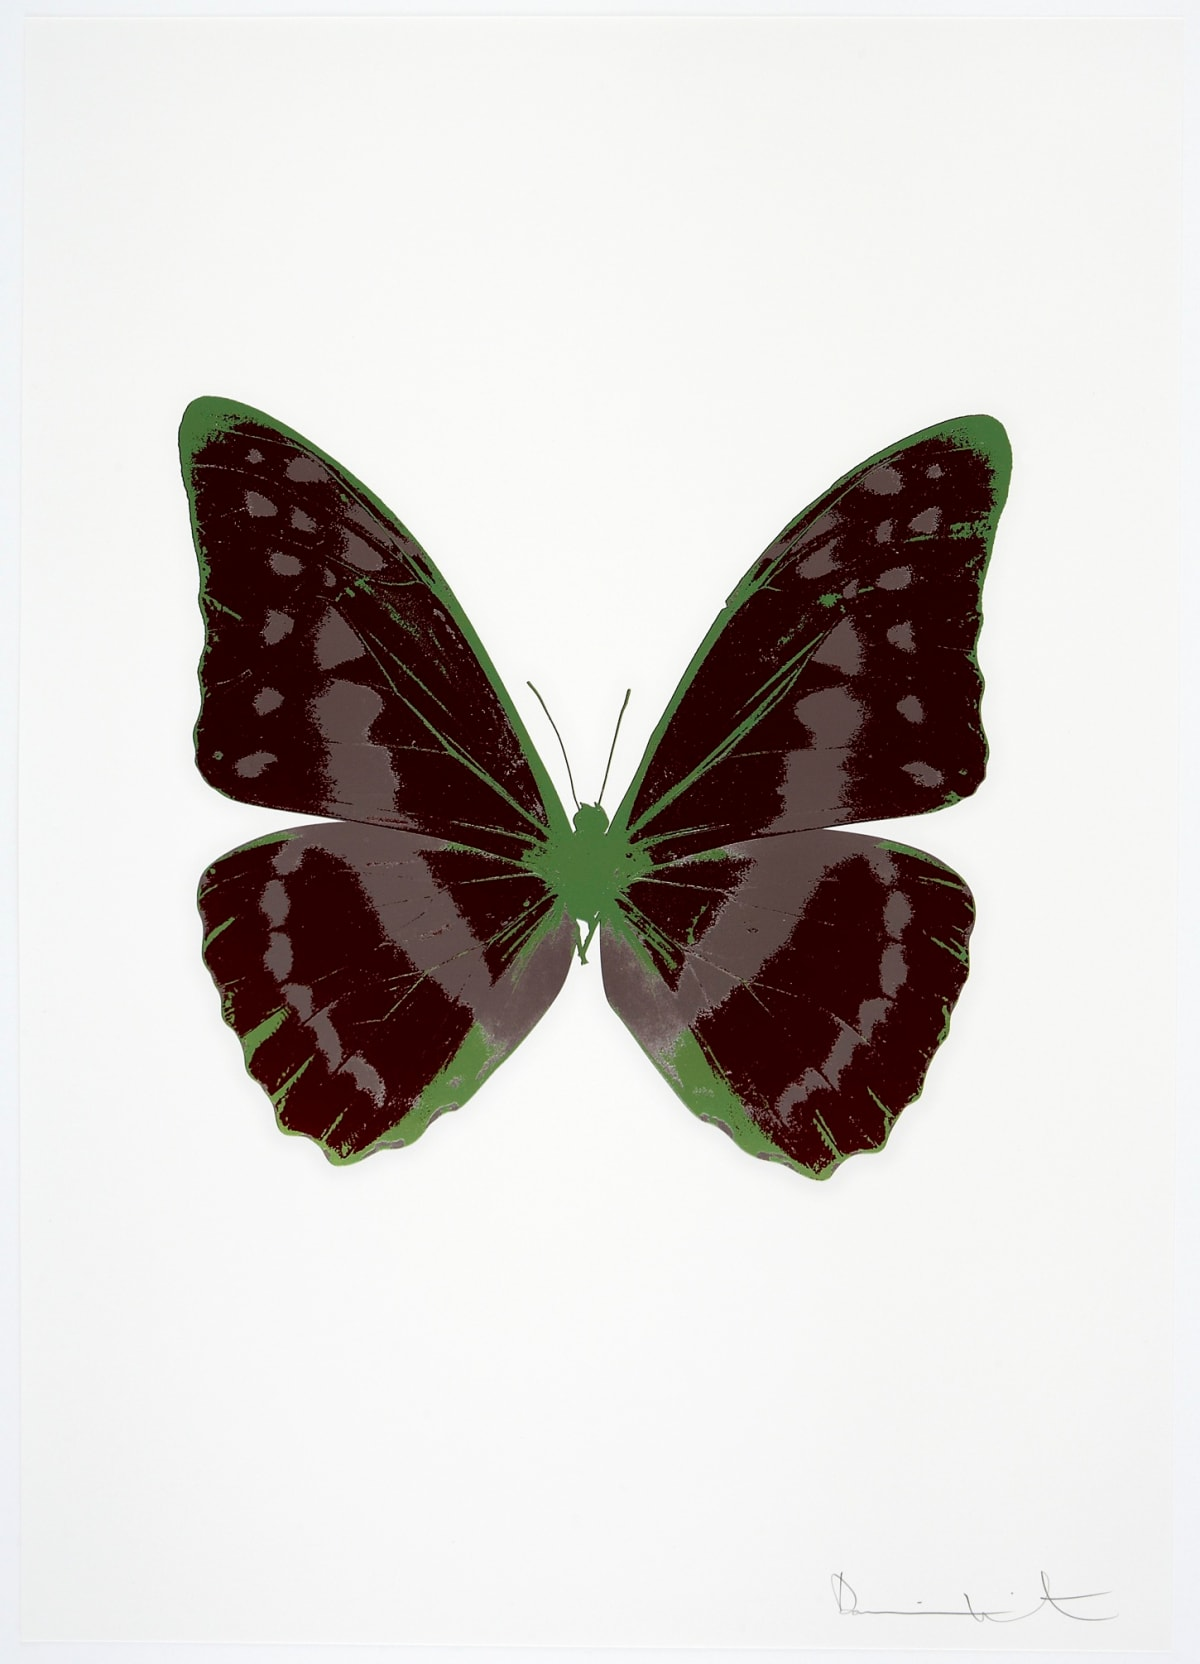 Damien Hirst The Souls III - Burgundy/Gunmetal/Leaf Green, 2010 3 colour foil block on 300gsm Arches 88 archival paper. Signed and numbered. Published by Paul Stolper and Other Criteria 72 x 51cm OC7907 / 660-10 Edition of 15